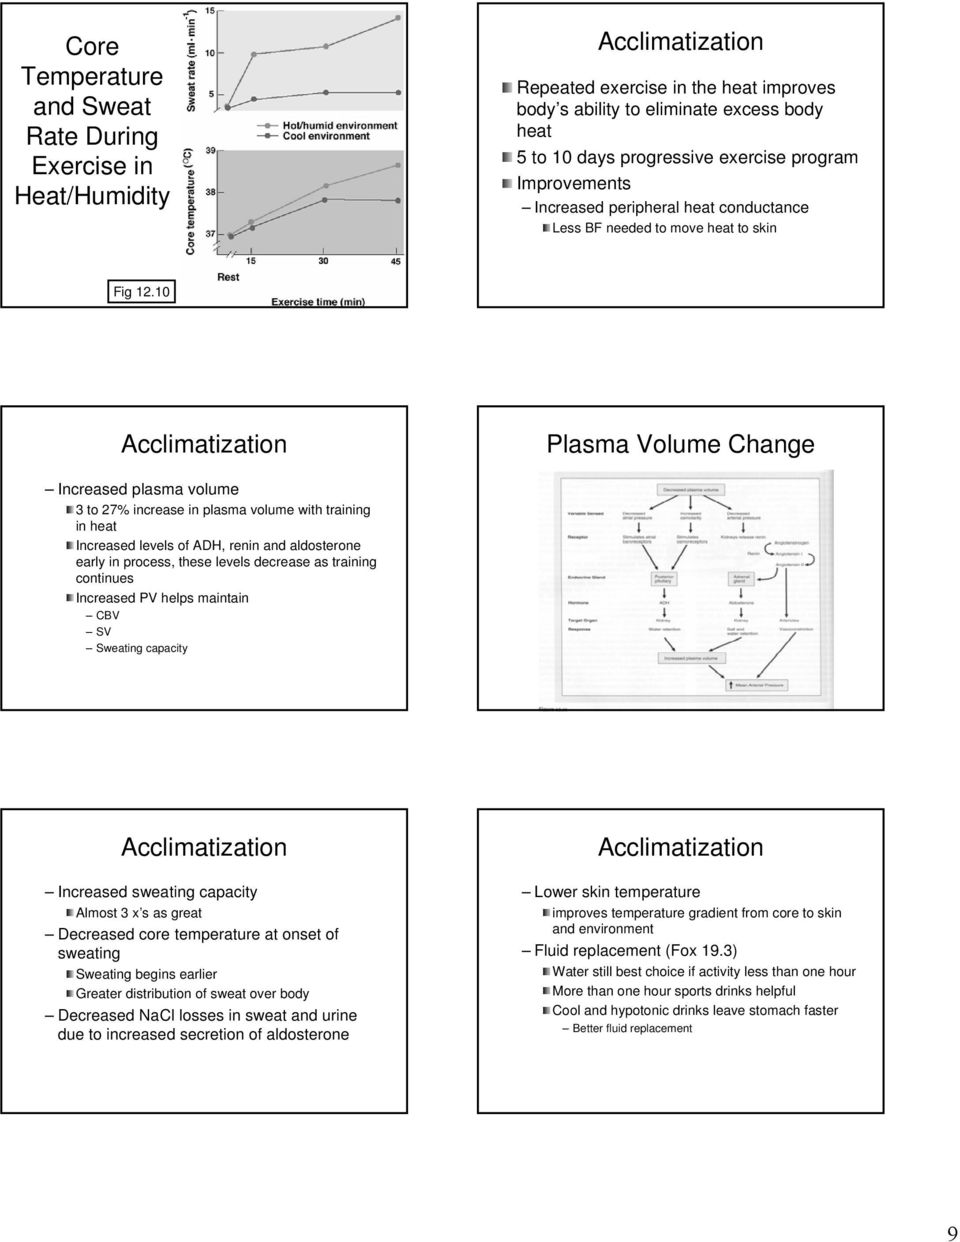 10 Acclimatization Plasma Volume Change Increased plasma volume 3 to 27% increase in plasma volume with training in heat Increased levels of ADH, renin and aldosterone early in process, these levels